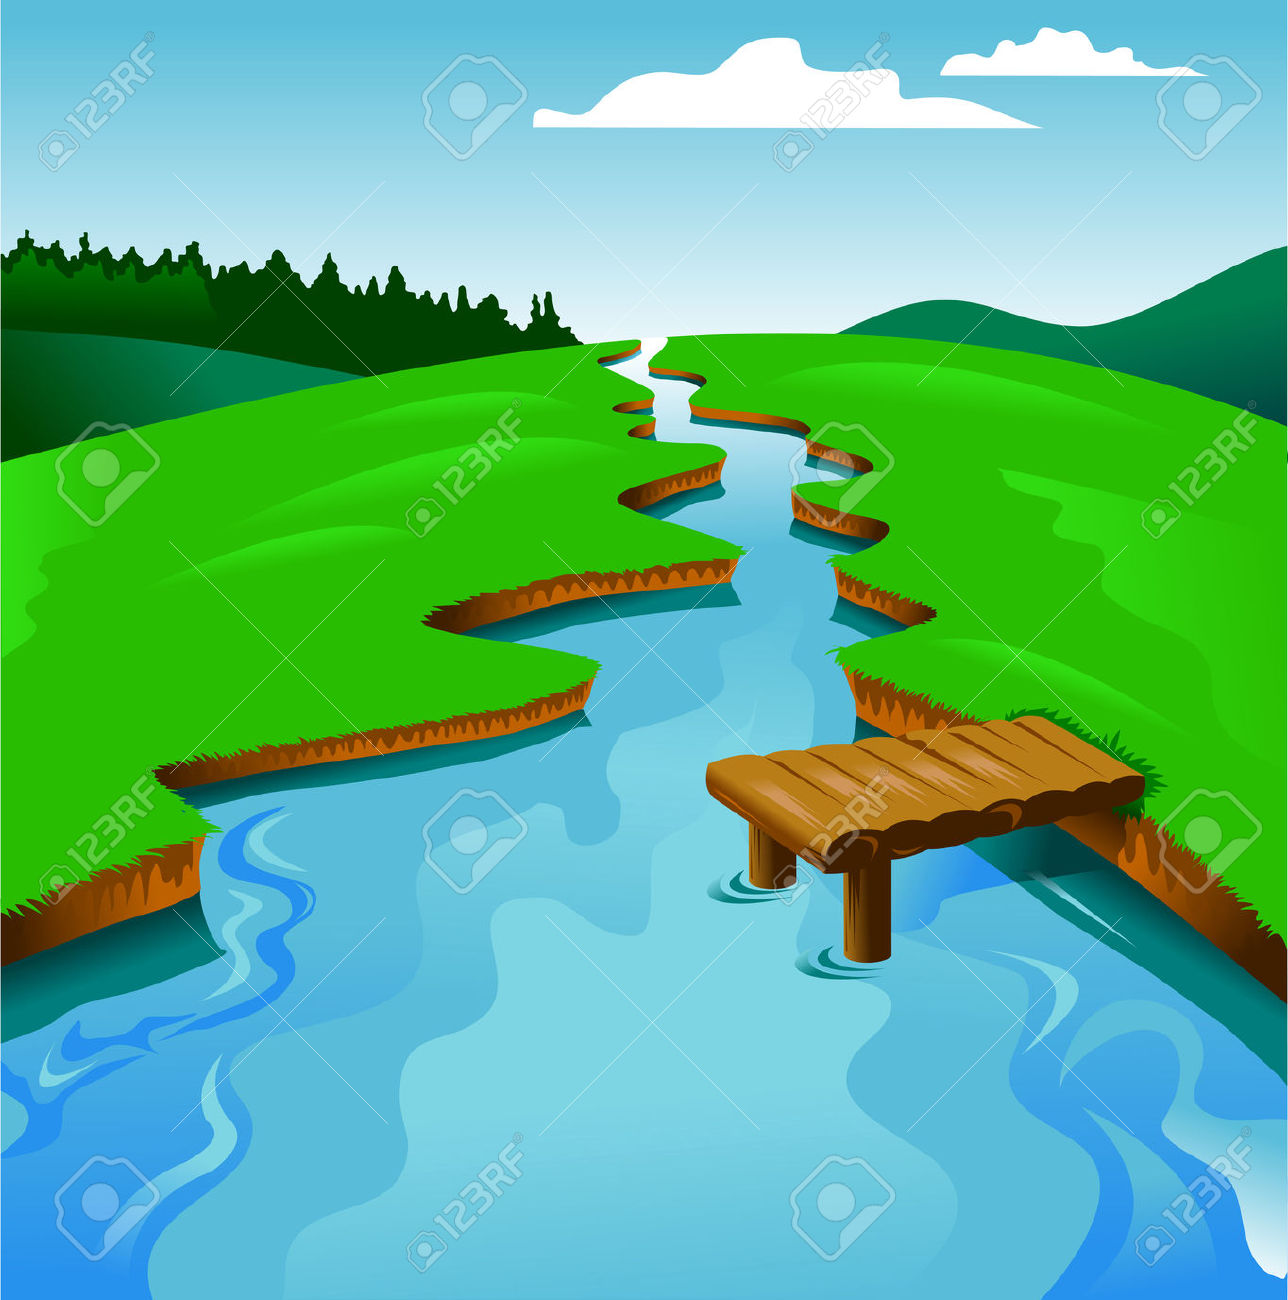 River background clipart clipart freeuse Blue River On A Background Of Green Landscape, Vector And ... clipart freeuse